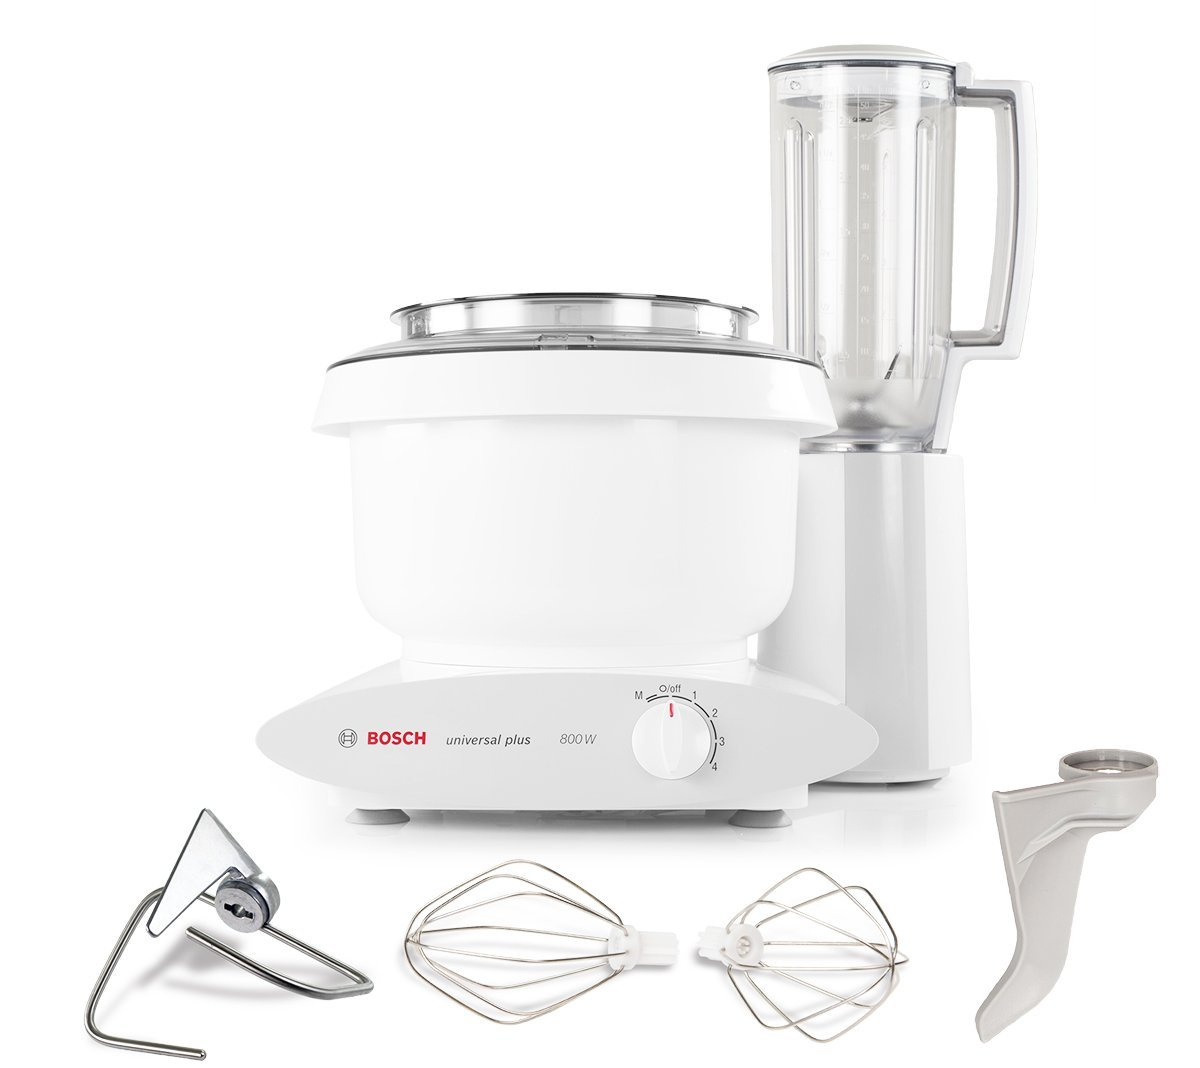 Bosch Small Kitchen Appliances Amazoncom Bosch Mum6n11uc Universal Plus Stand Mixer 800 Watt